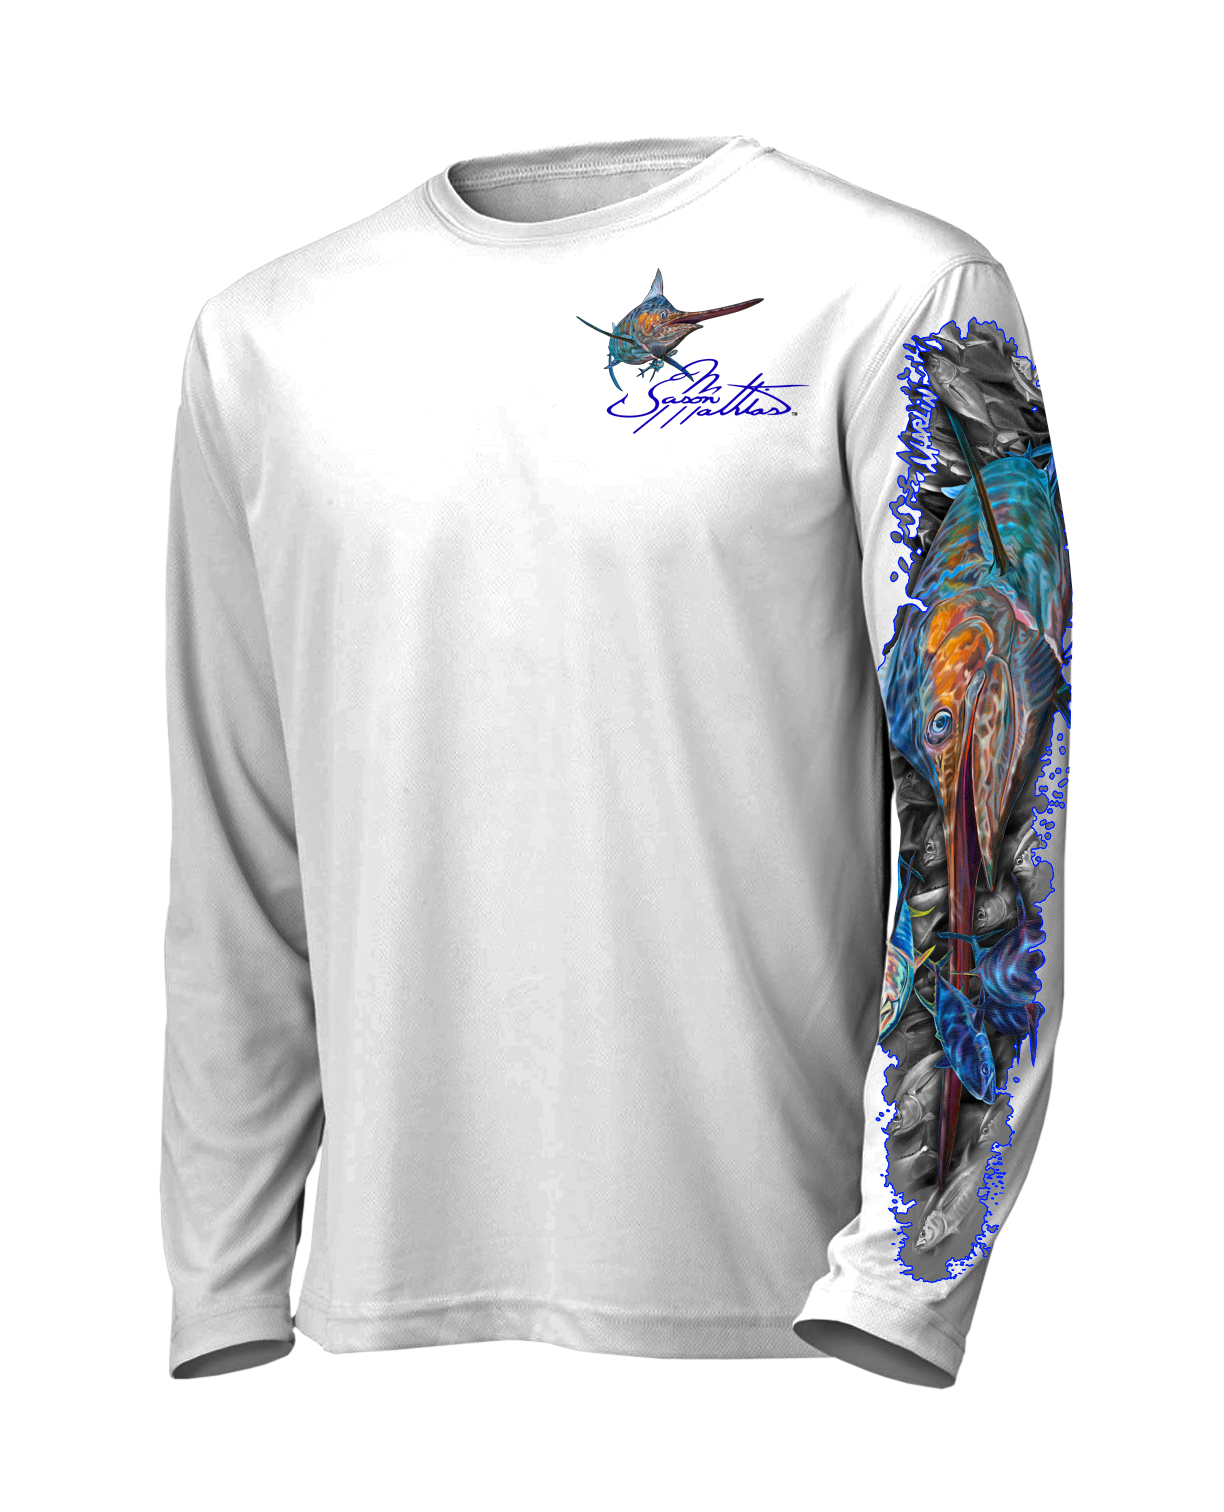 blue-marlin-shirt-white-front-jason-mathias.png